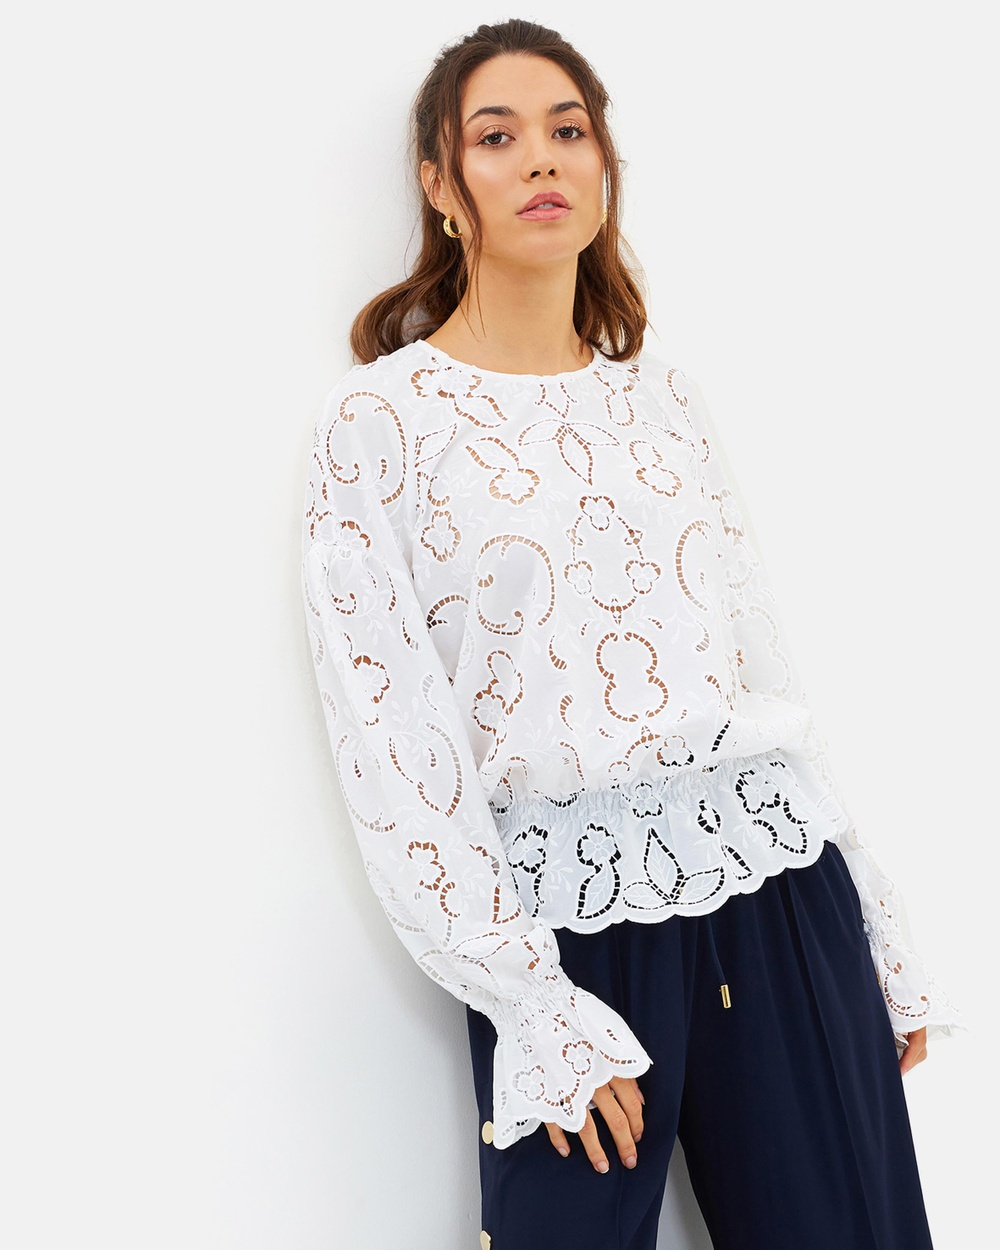 Perseverance Lily Cut Out Embroidered Crepe Blouse Tops Off White Lily Cut-Out Embroidered Crepe Blouse